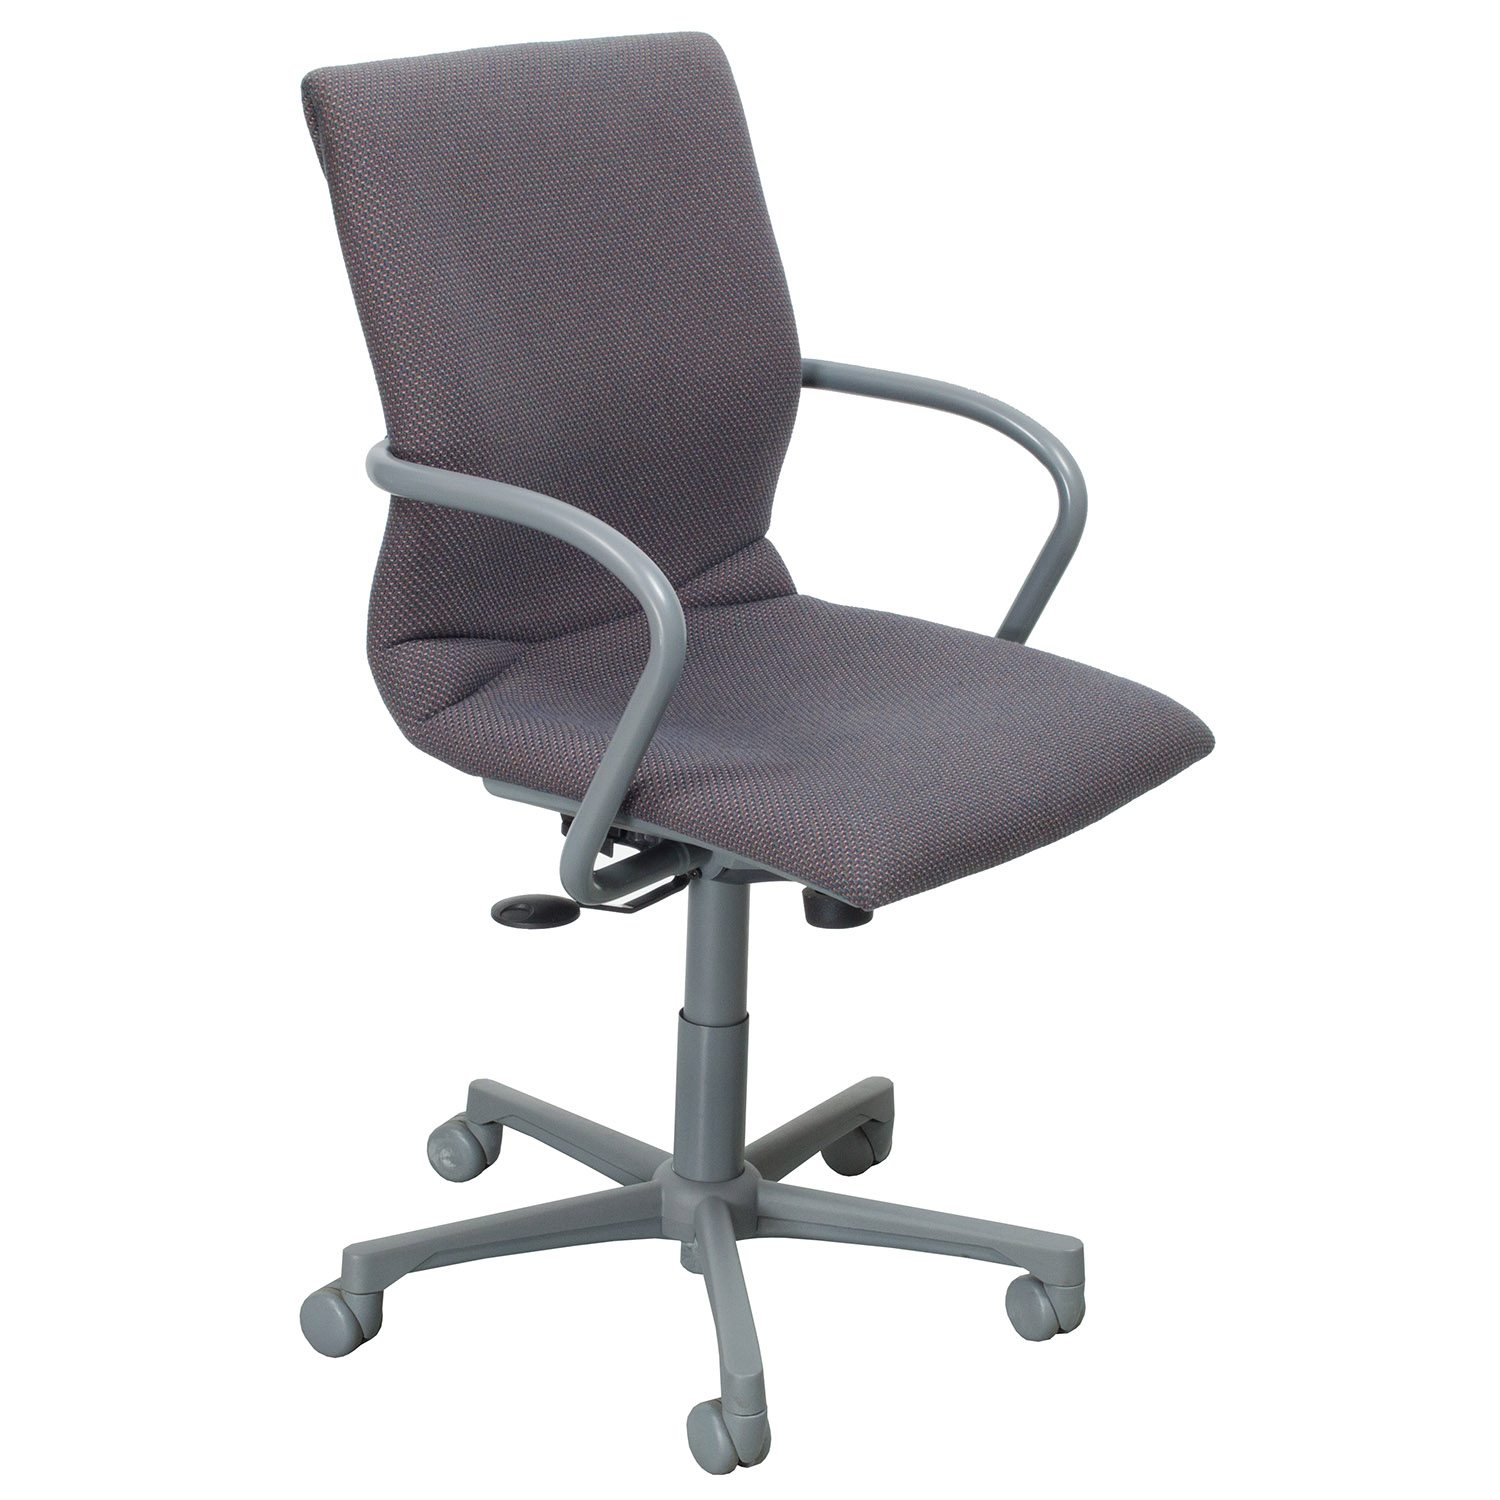 steelcase chair best for guitar protege used conference purple blend national